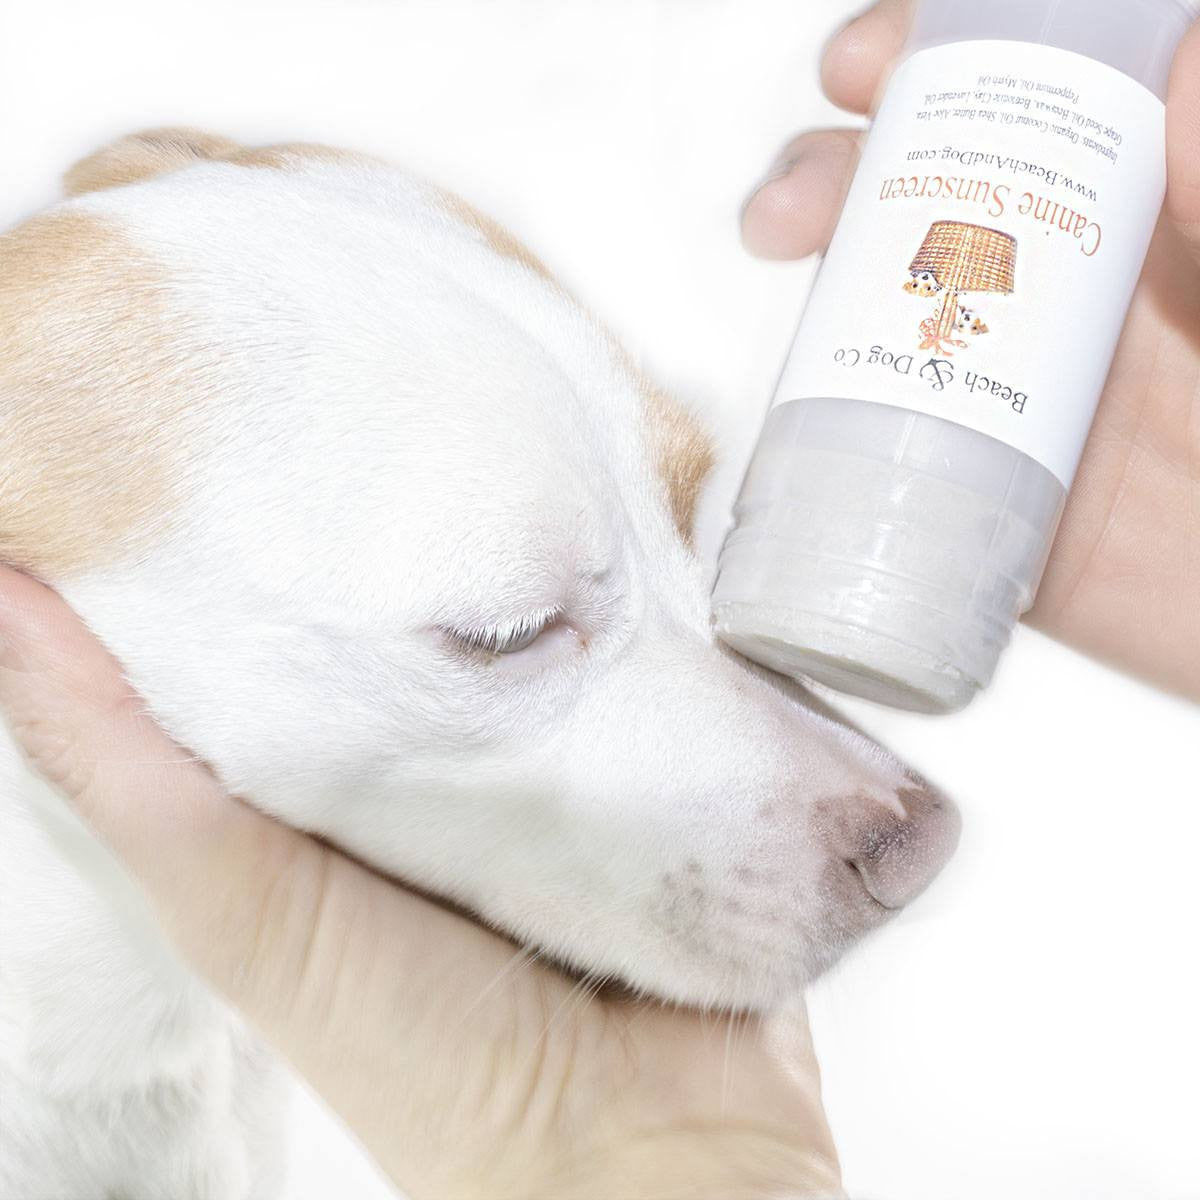 Canine Sunscreen (2 oz Twist Up) Zinc and Titanium Dioxide Free - Beach & Dog Co.